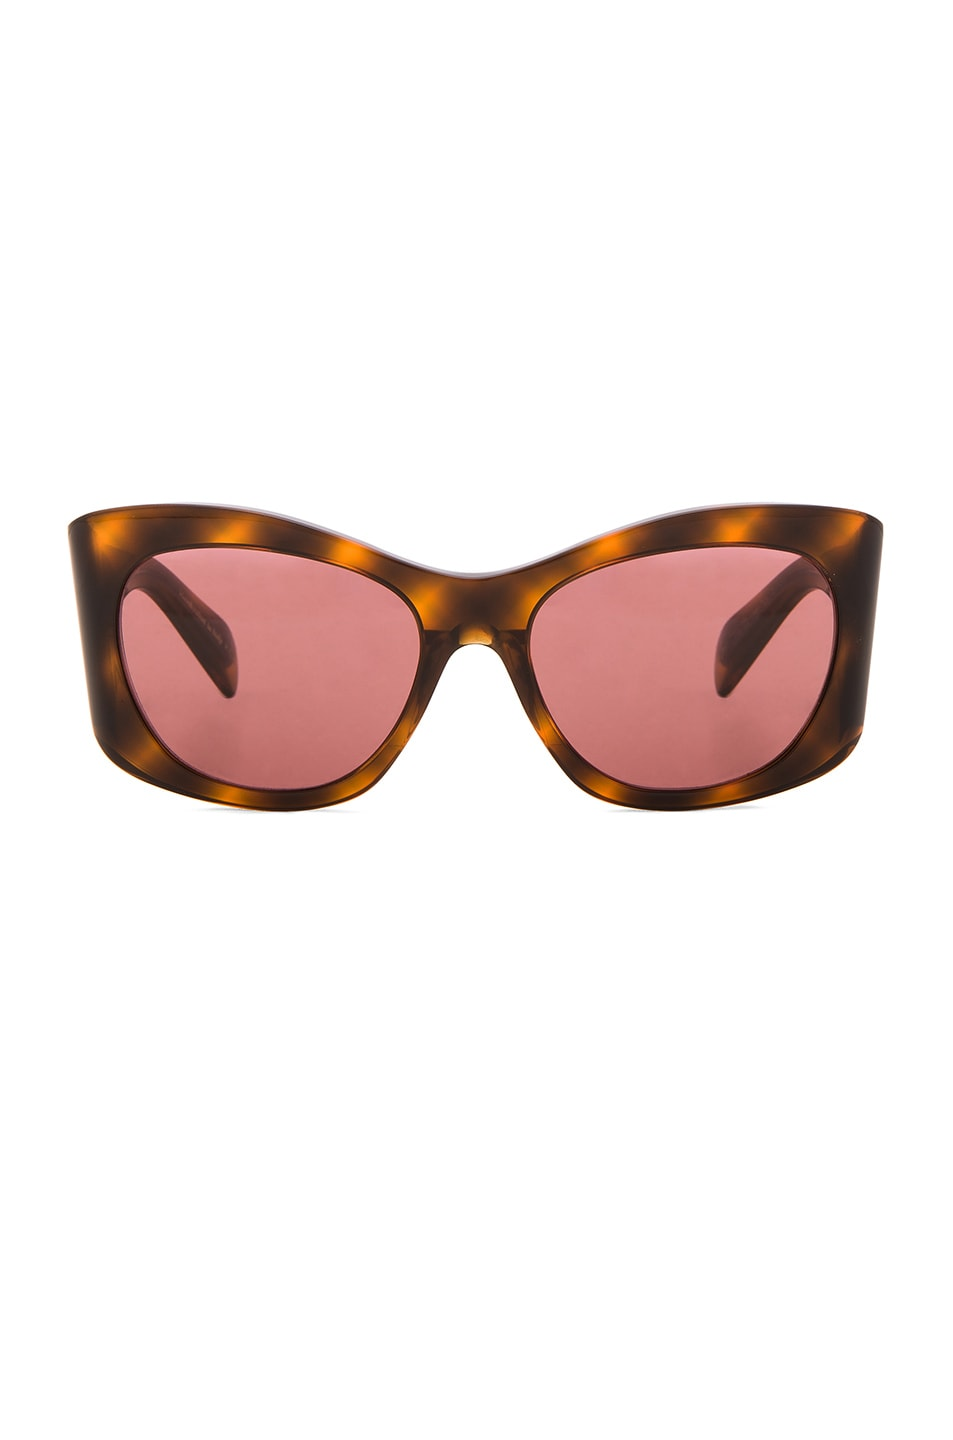 Image 1 of Oliver Peoples The Row Bother Me Sunglasses in Tortoise